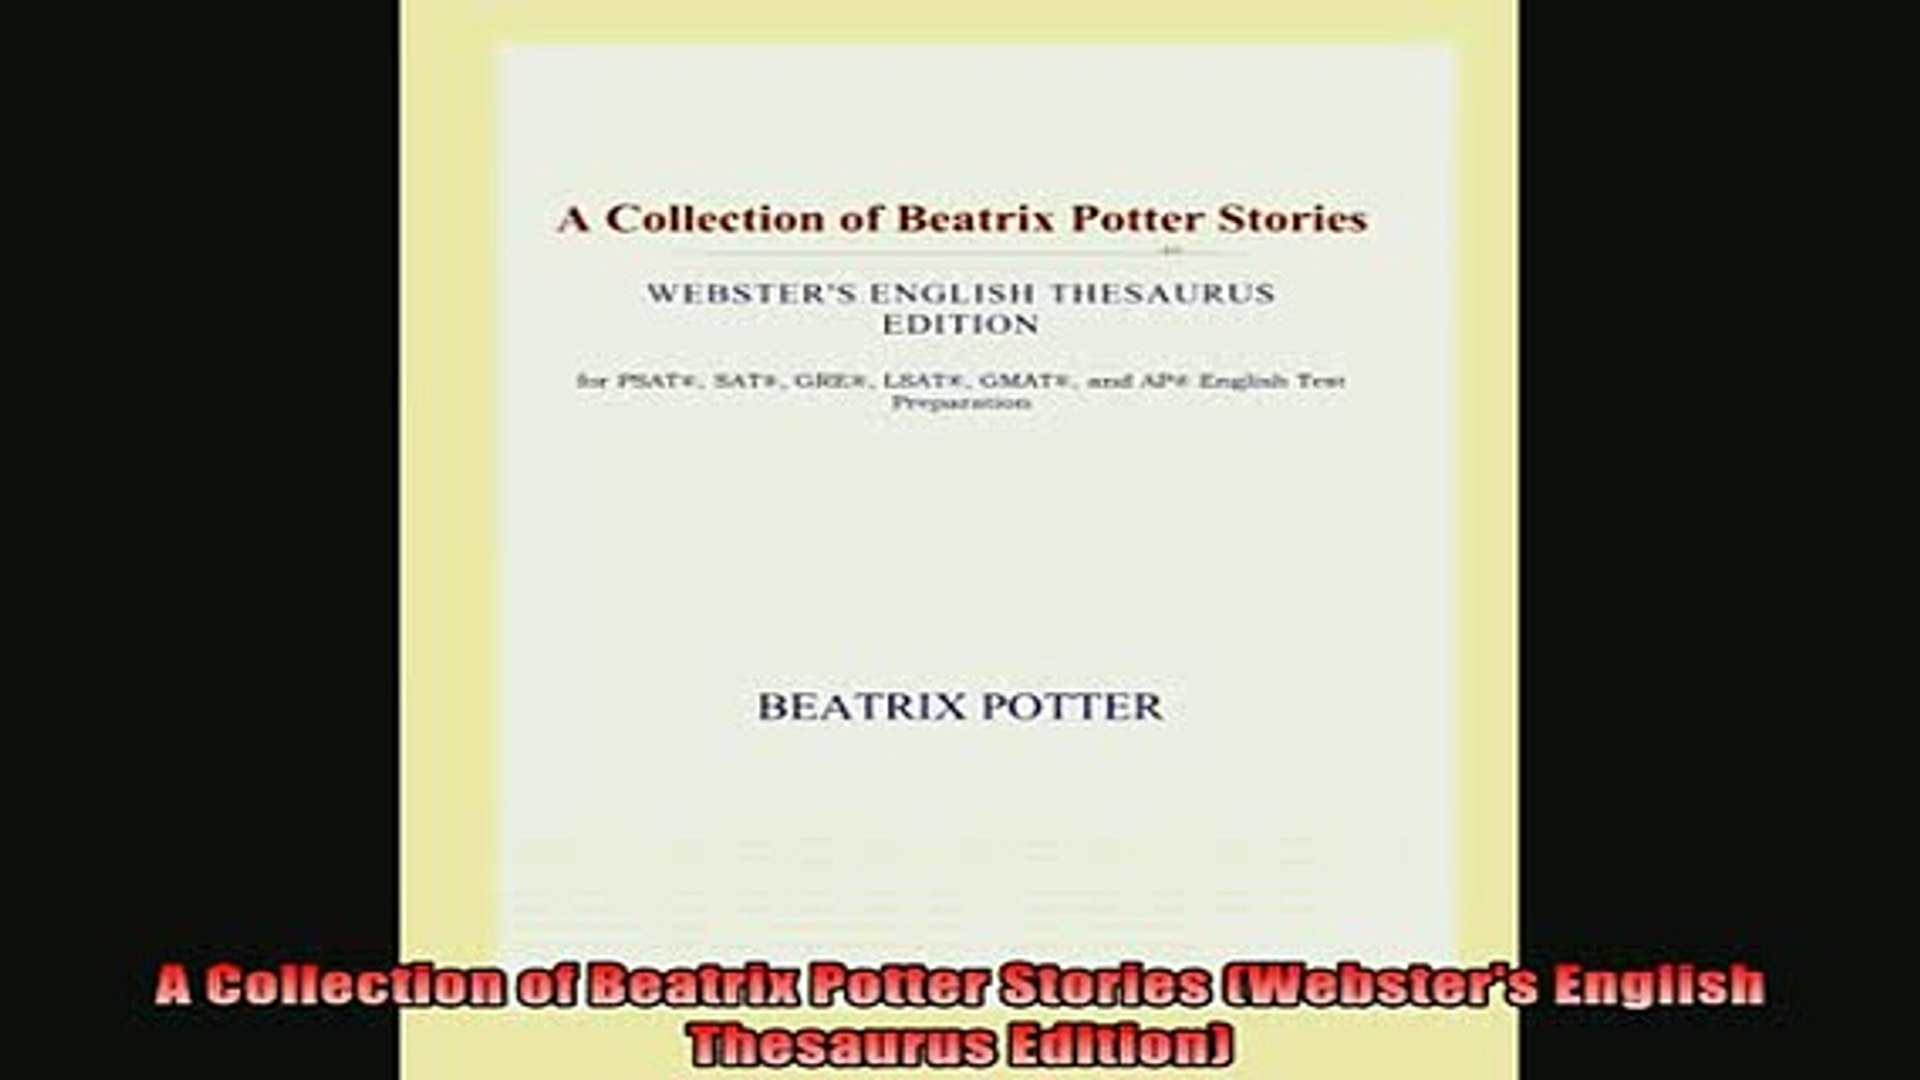 For you  A Collection of Beatrix Potter Stories Websters English Thesaurus Edition